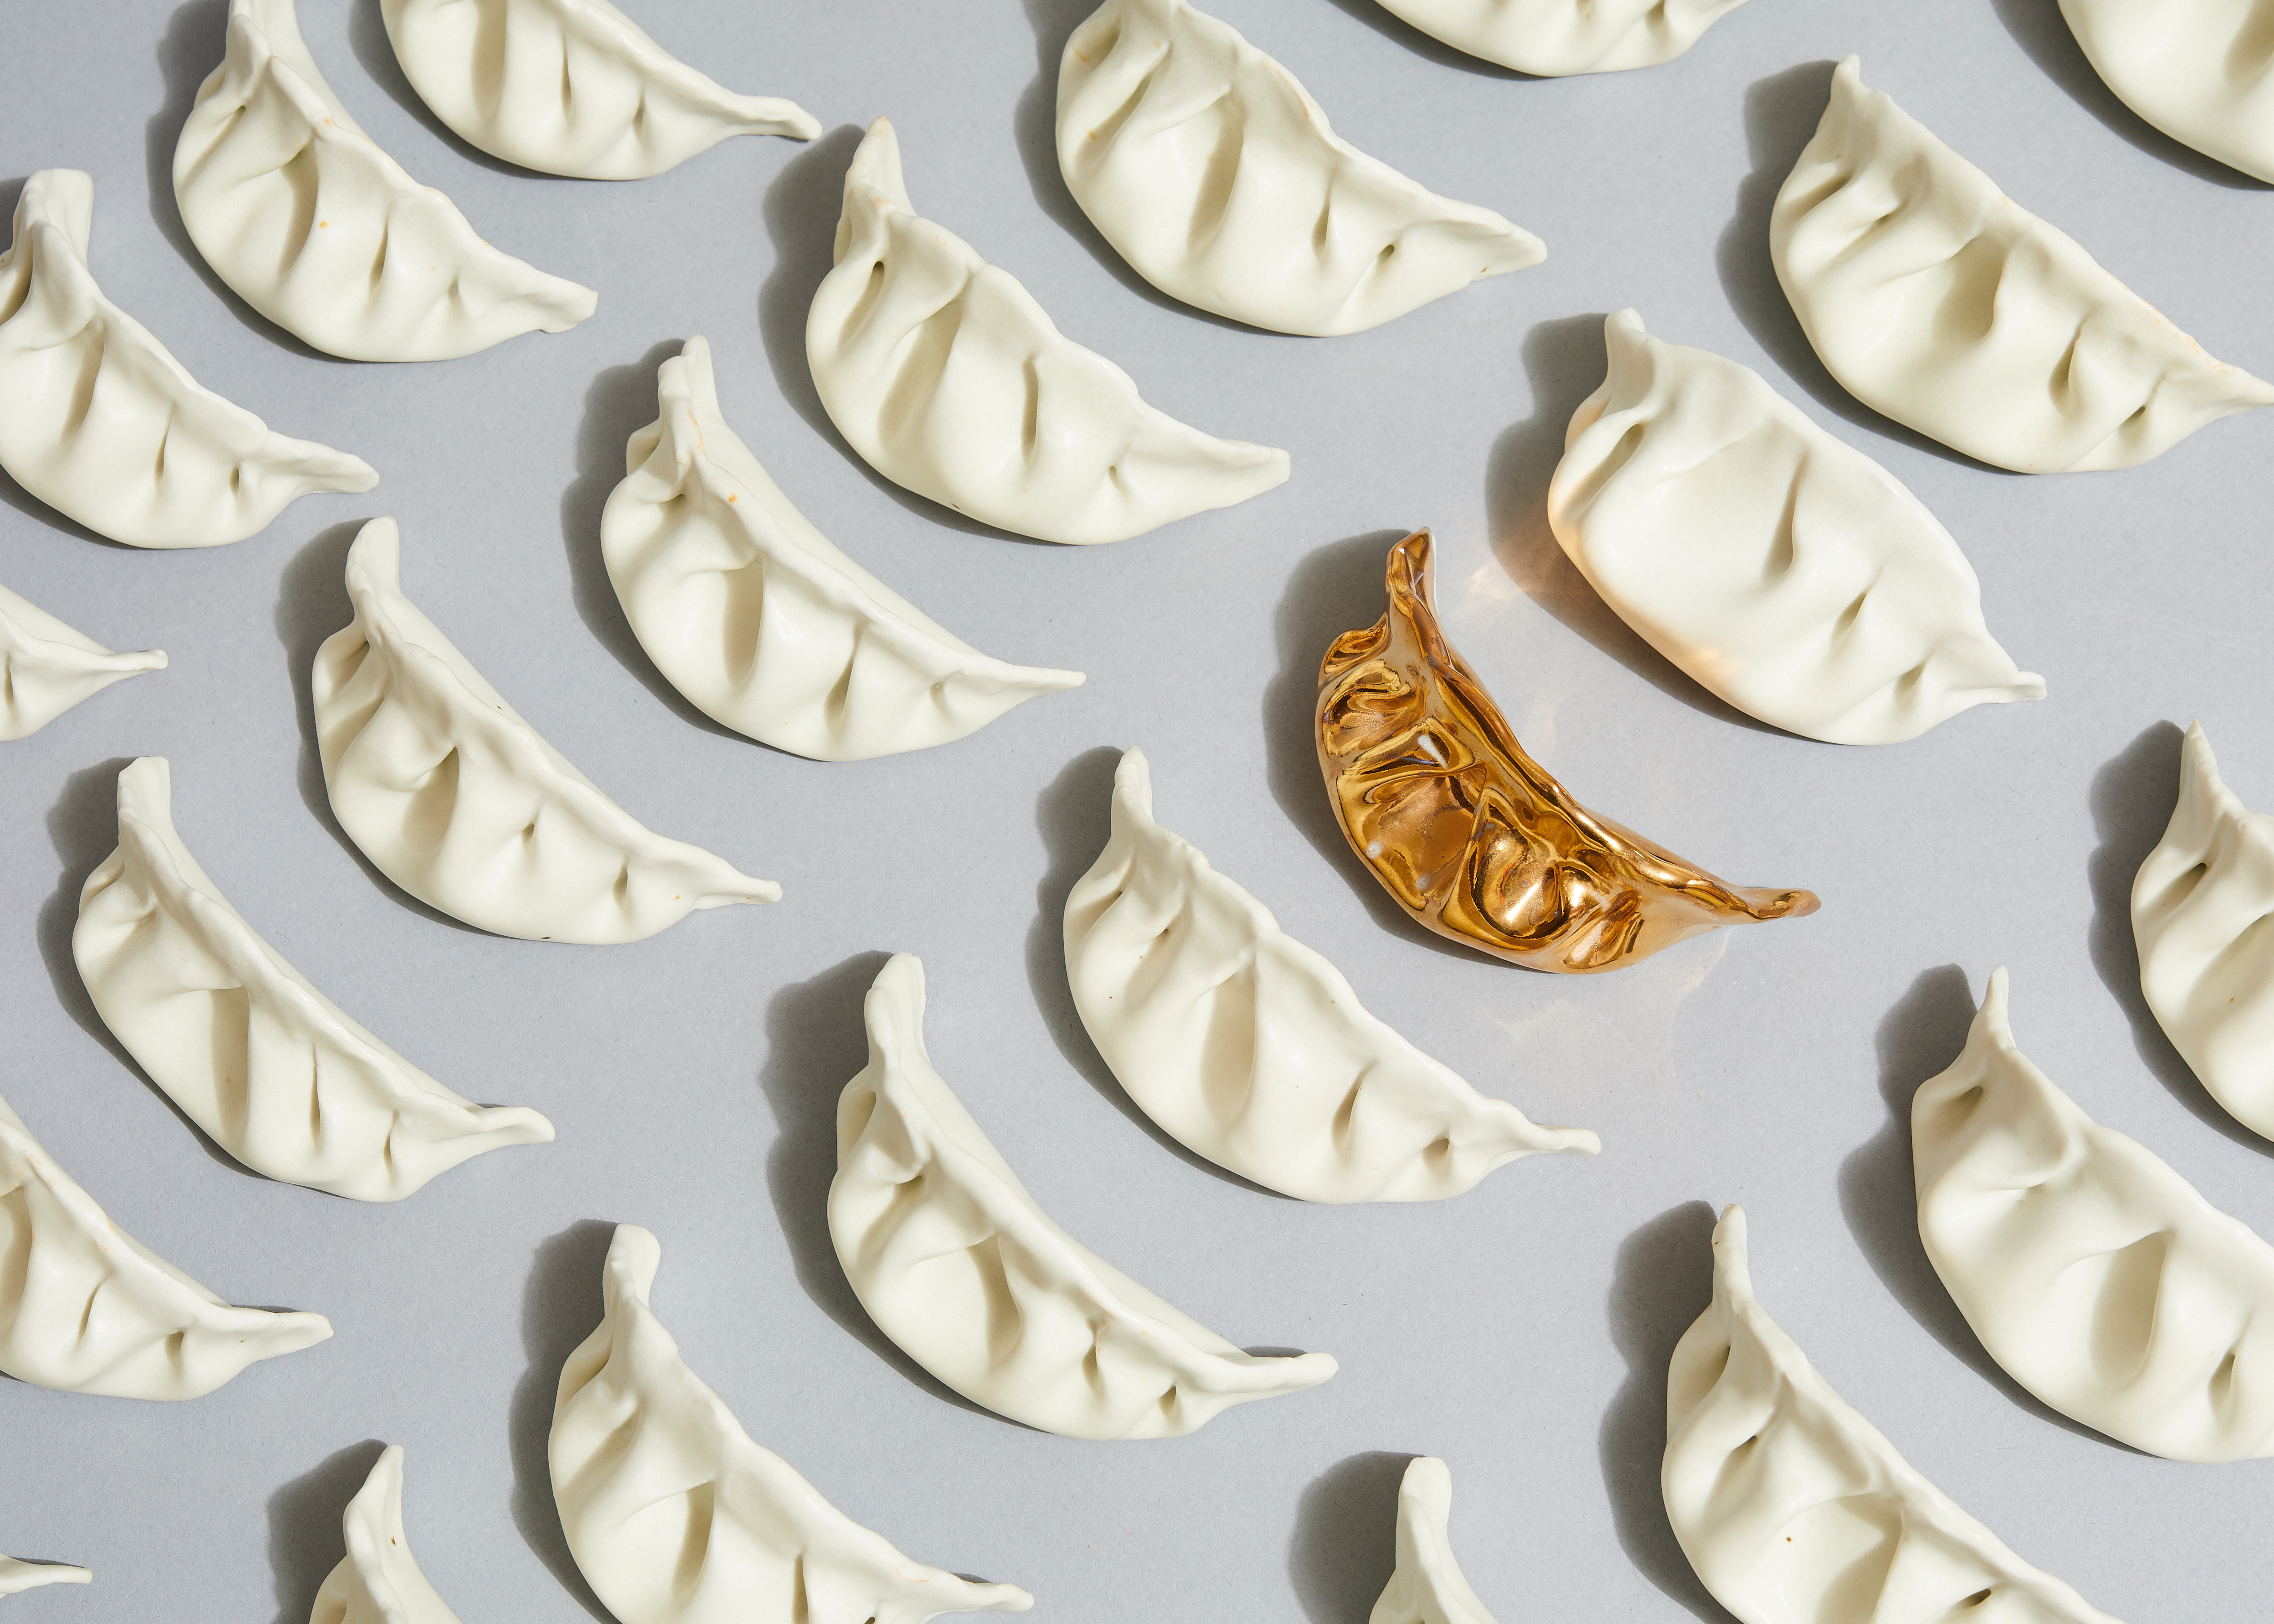 Artist Stephanie Shih remembers making pork-filled dumplings with her family and started her art project by sculpting six of them out of porcelain. She's now made 600. (Courtesy of Robert Bredvad)